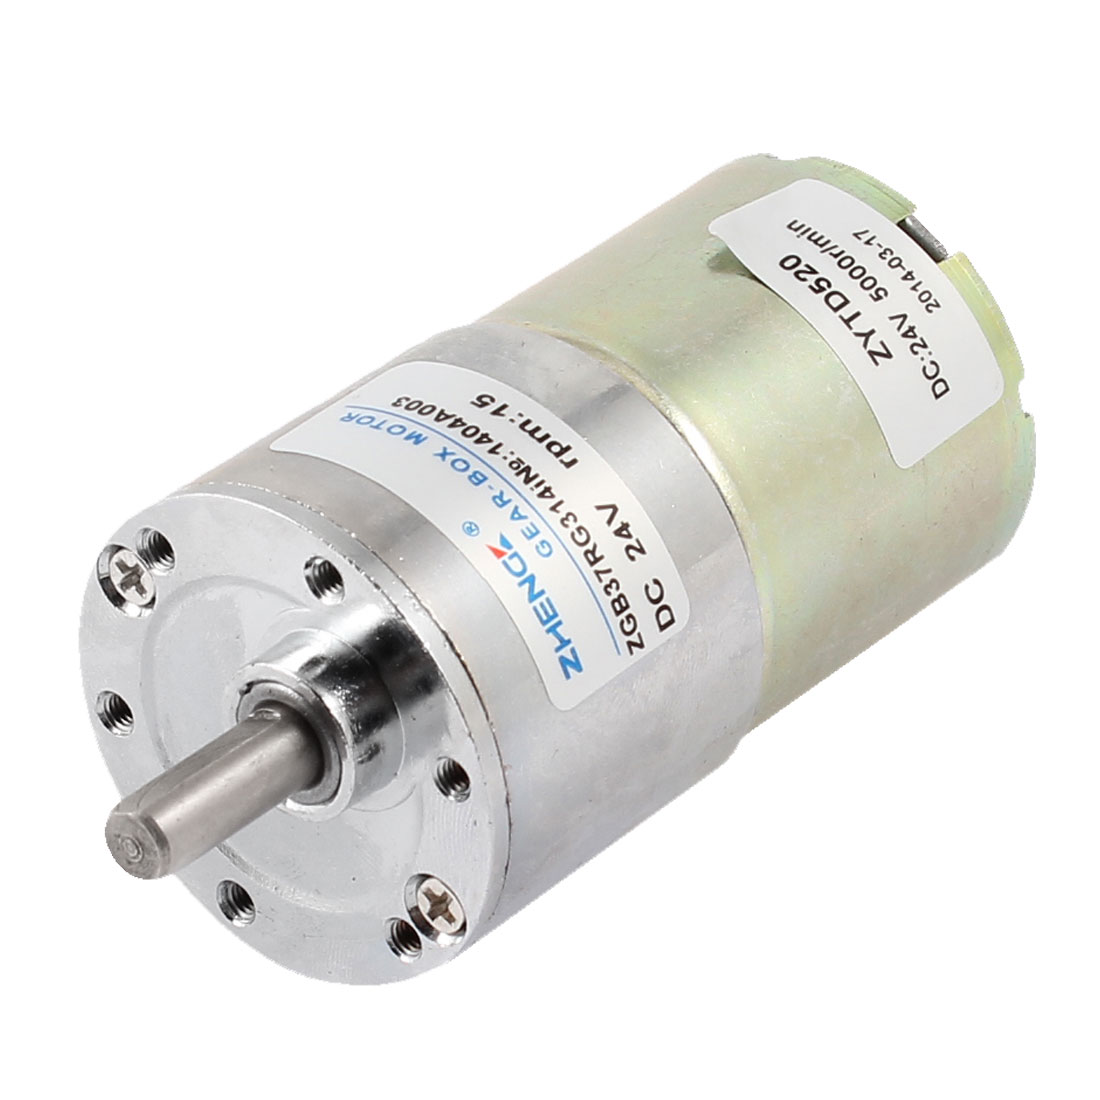 DC 24V 5000RPM 6mm Shaft Dia Cylinder Magnetic Electric Geared Box Motor